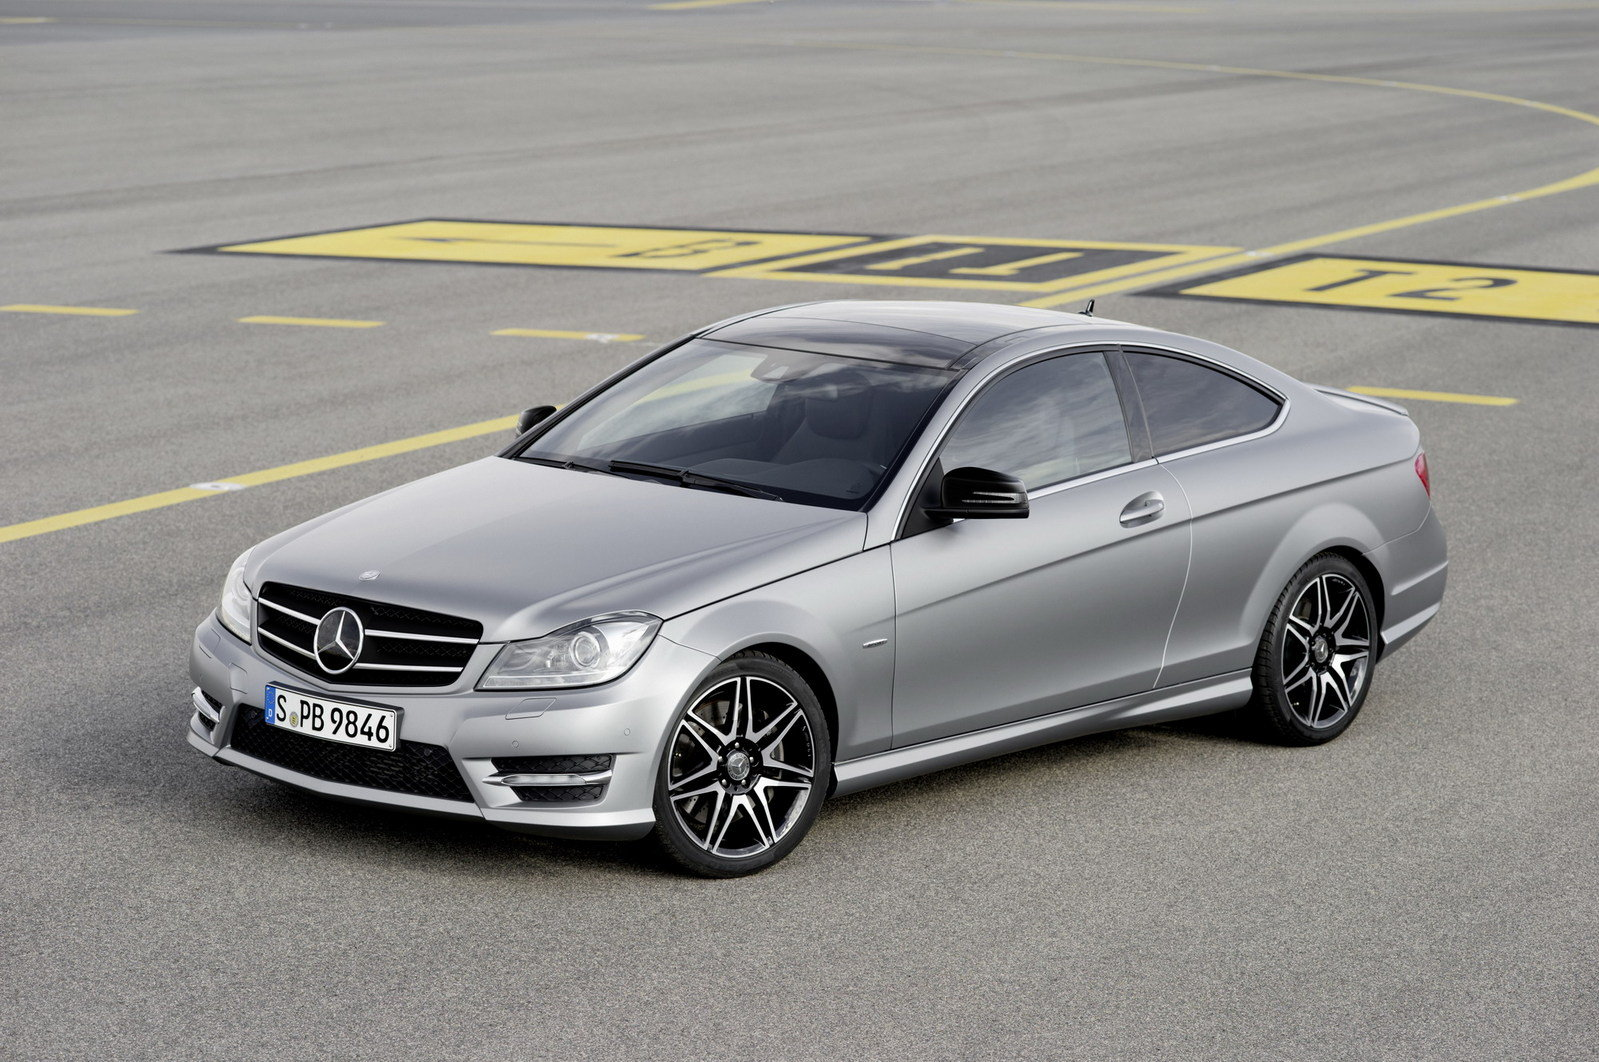 2013 Mercedes C-Class Coupe Sport | car review @ Top Speed